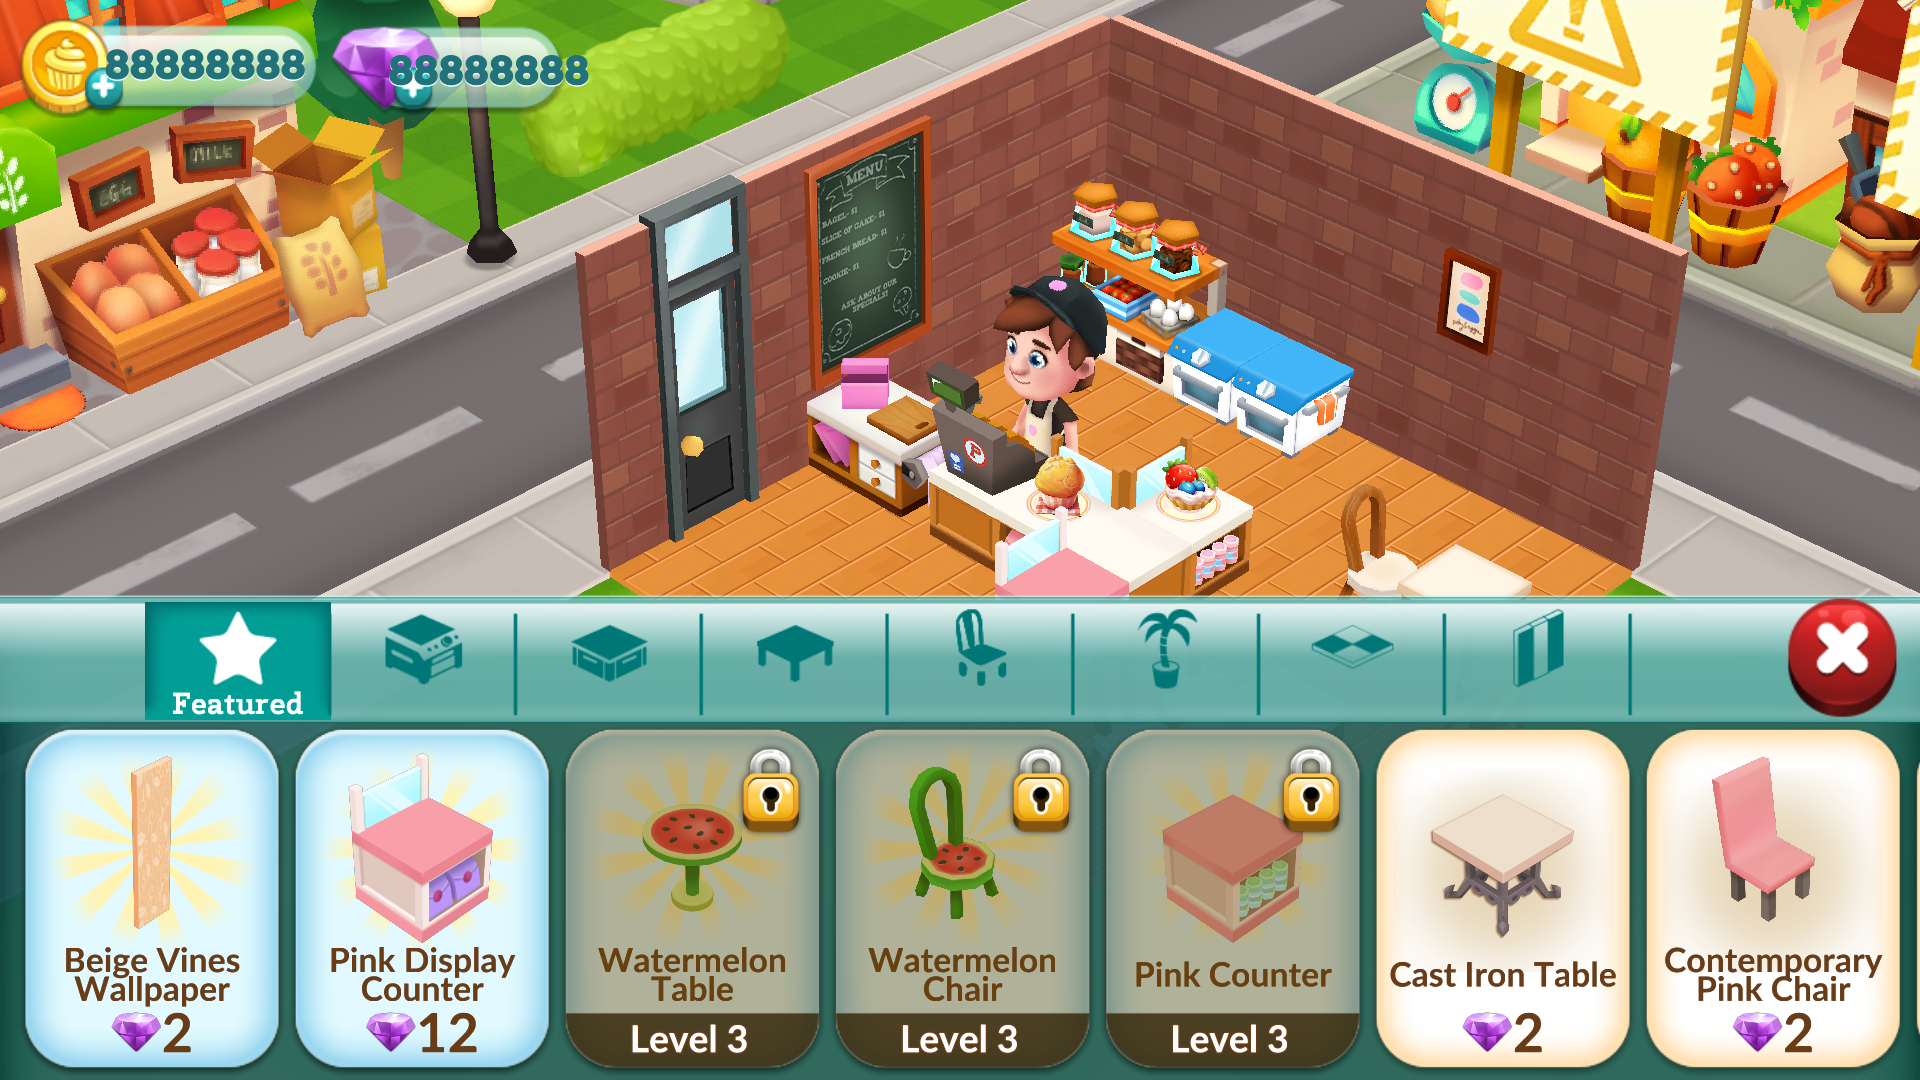 Bakery Story Mod APK Unlimited Gems and Gold Generator for